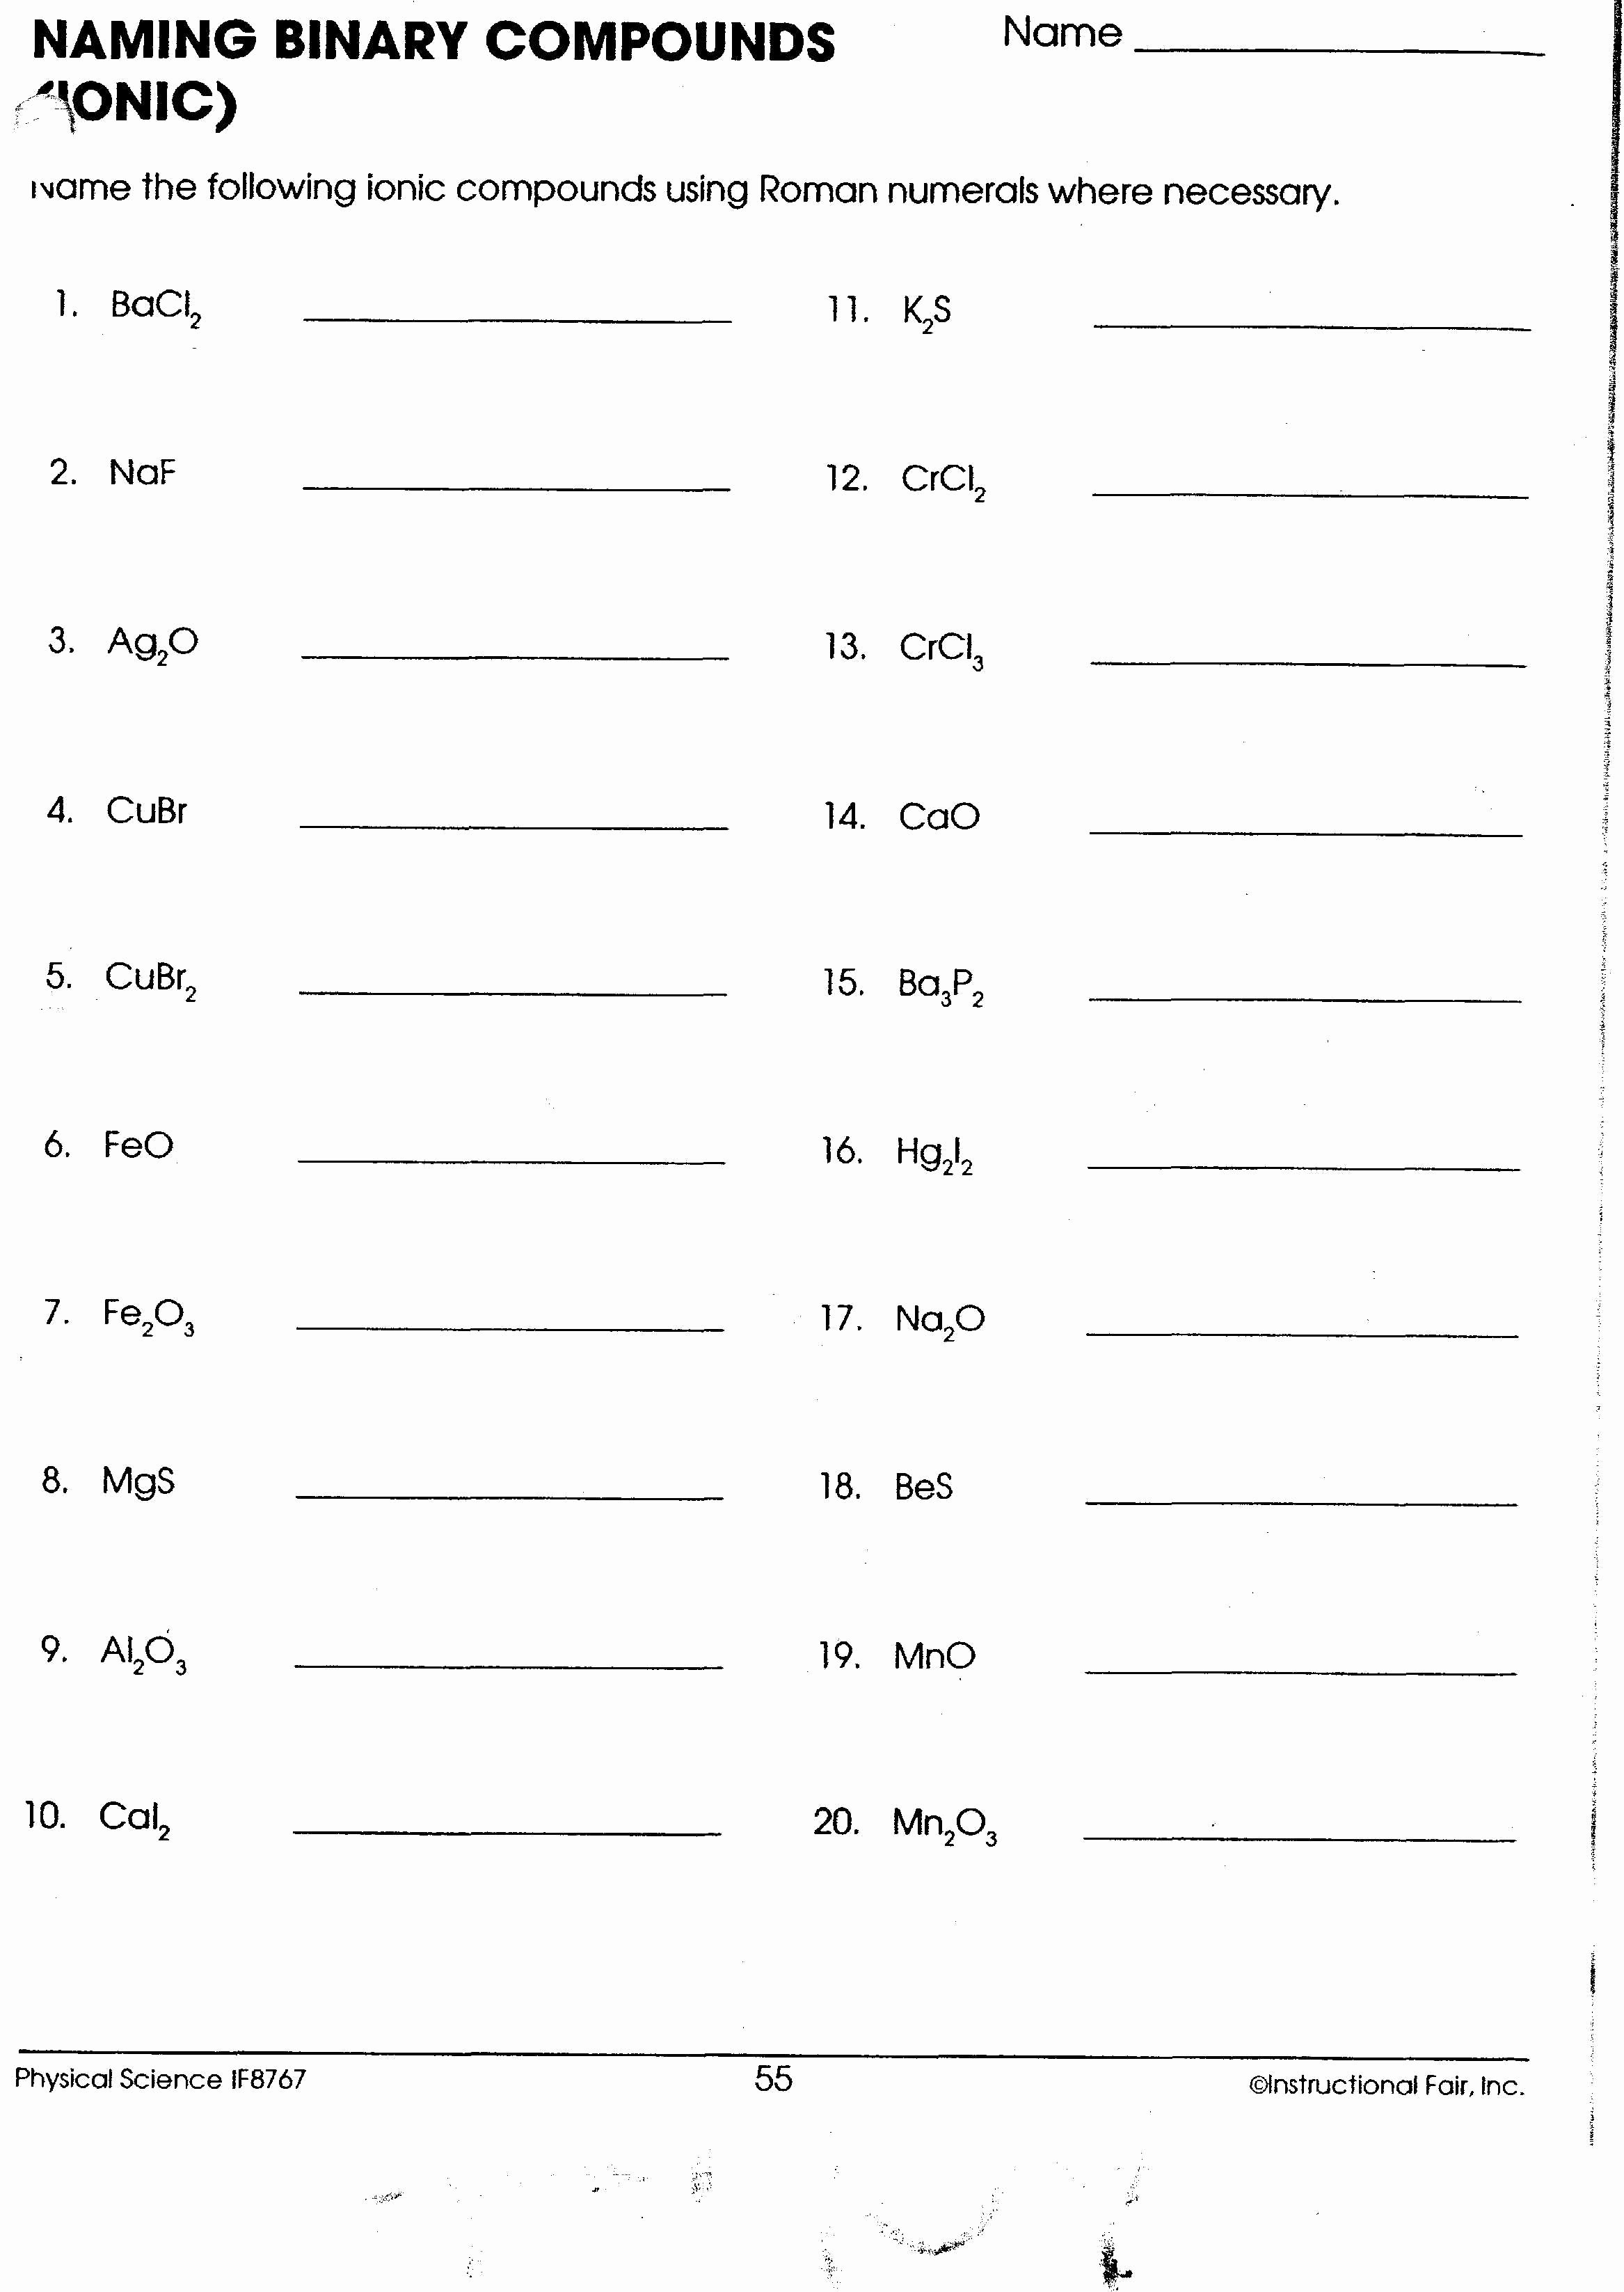 Ionic Bonds Worksheet Answers Best Of Writing Chemical formulas for Covalent Pounds Worksheet